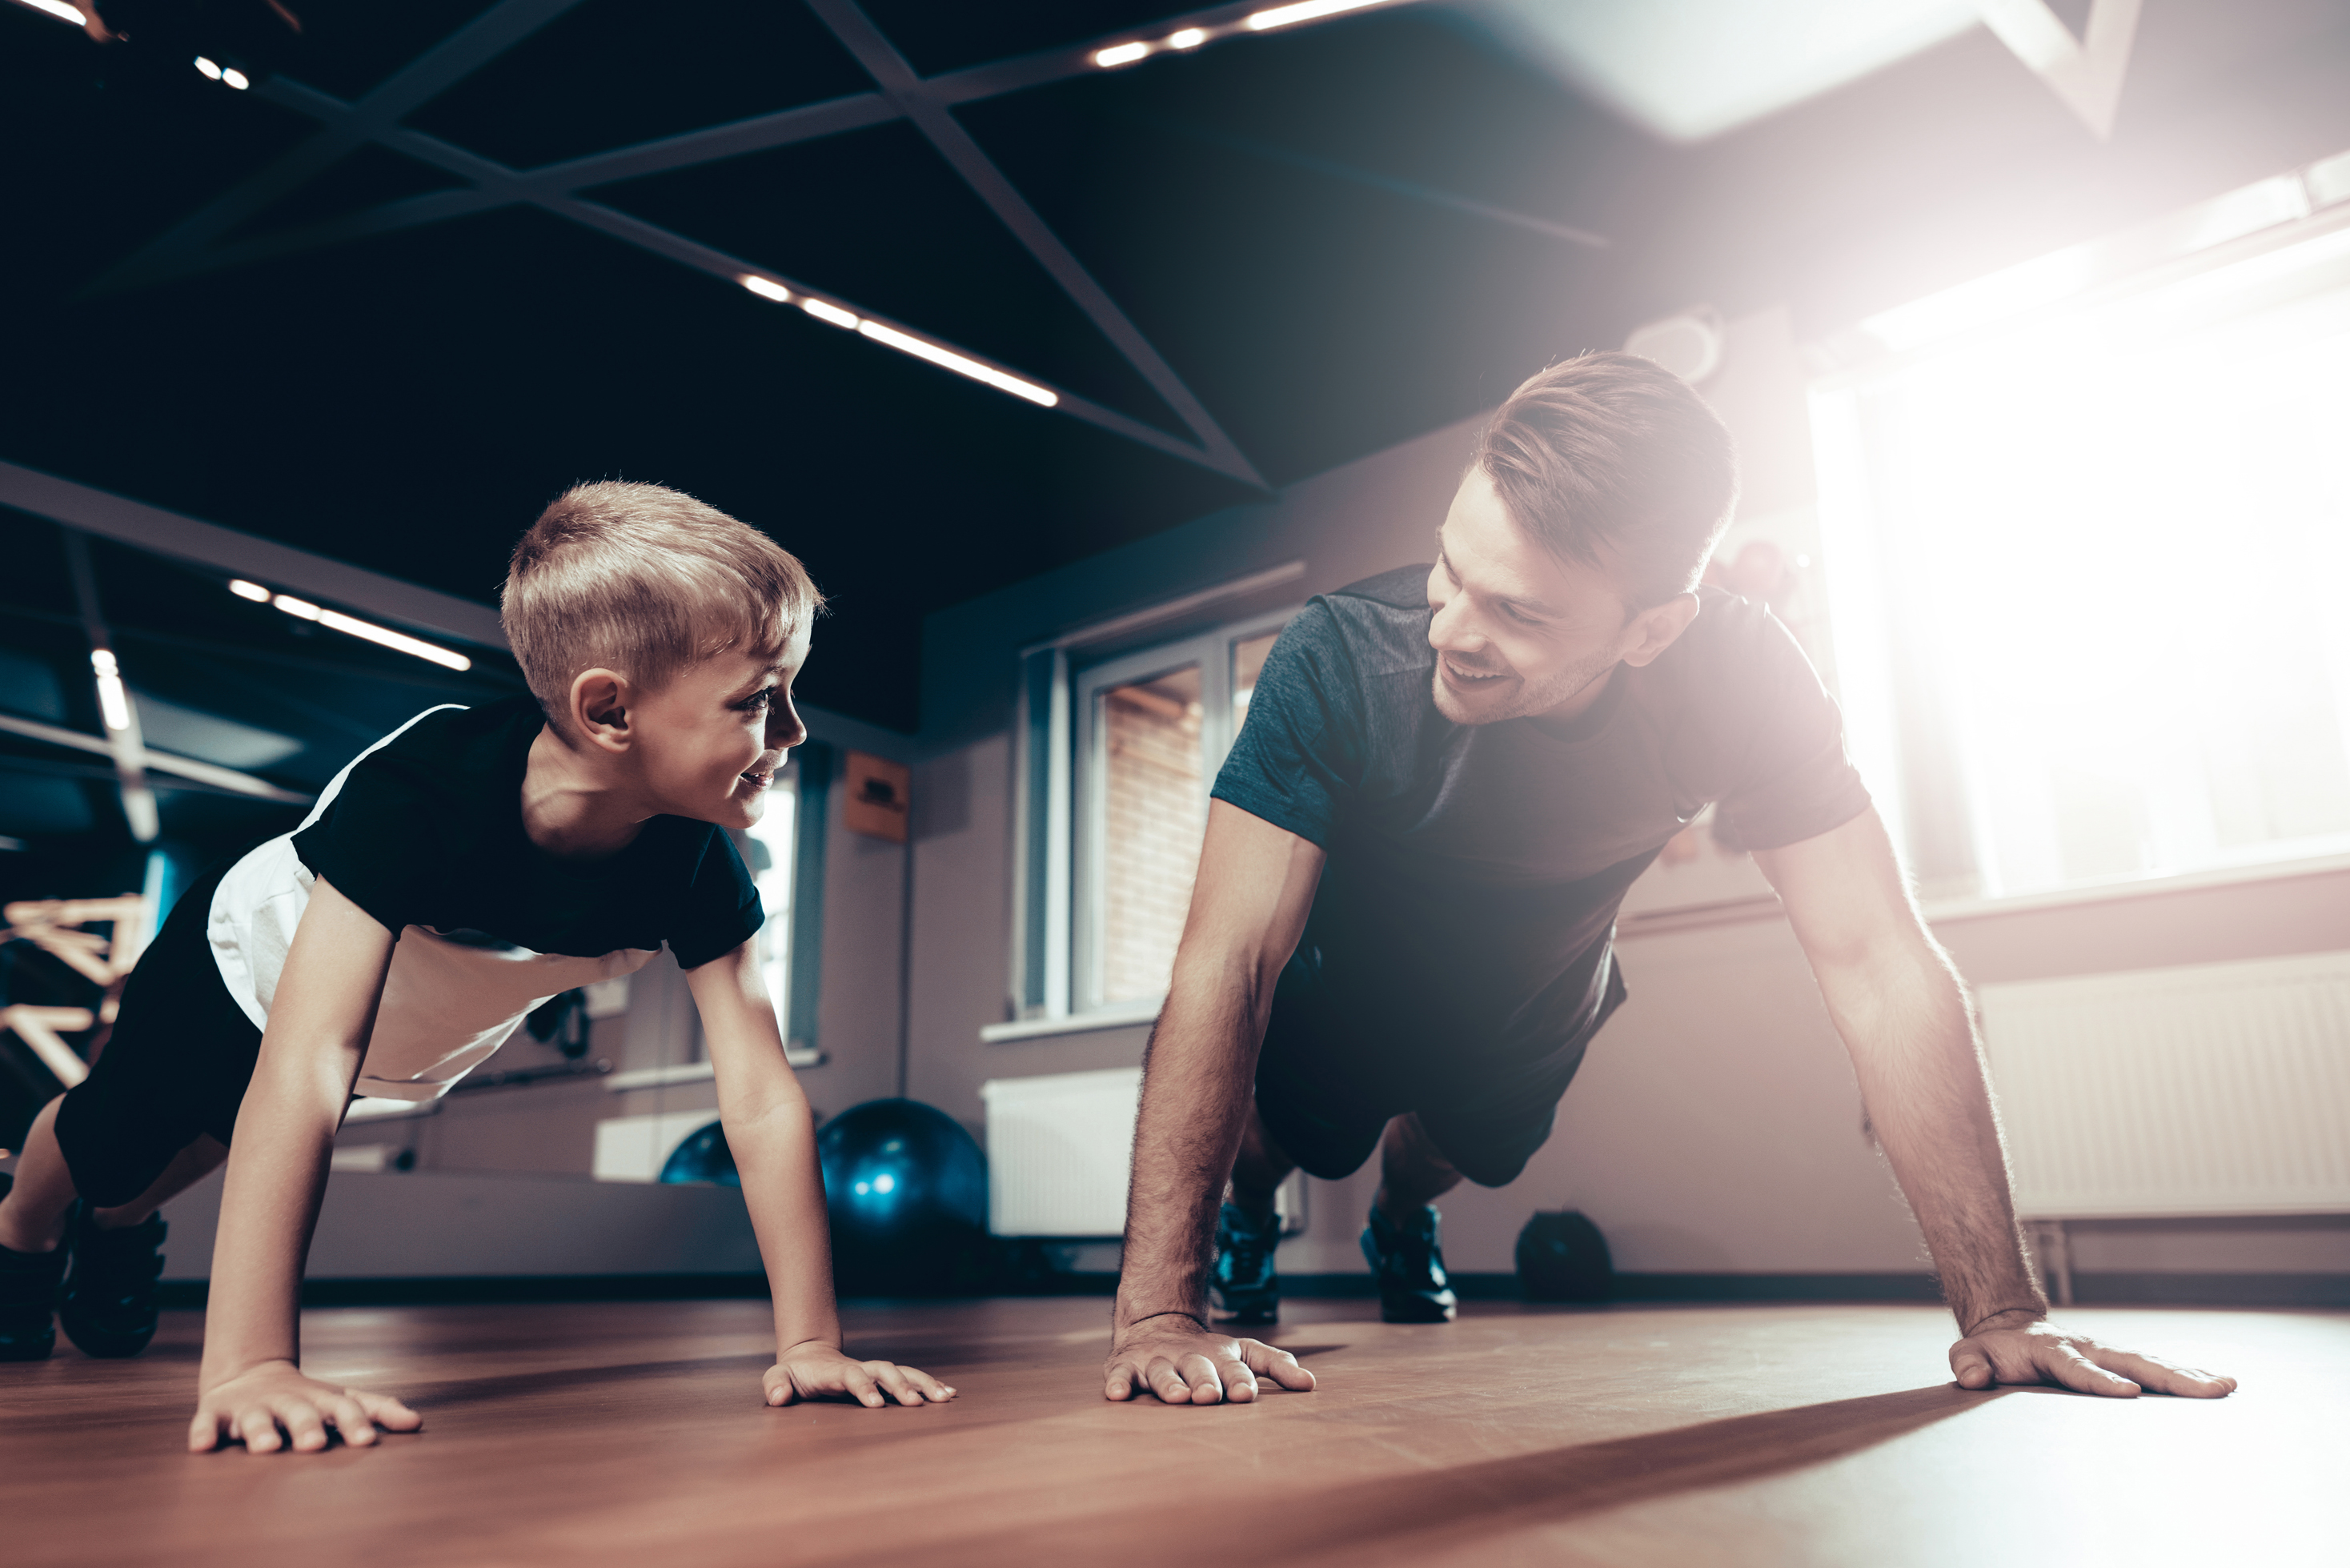 How to workout with the kids this summer, a8a344f6 7d68 4f51 ac03 11efa183e012%, health%